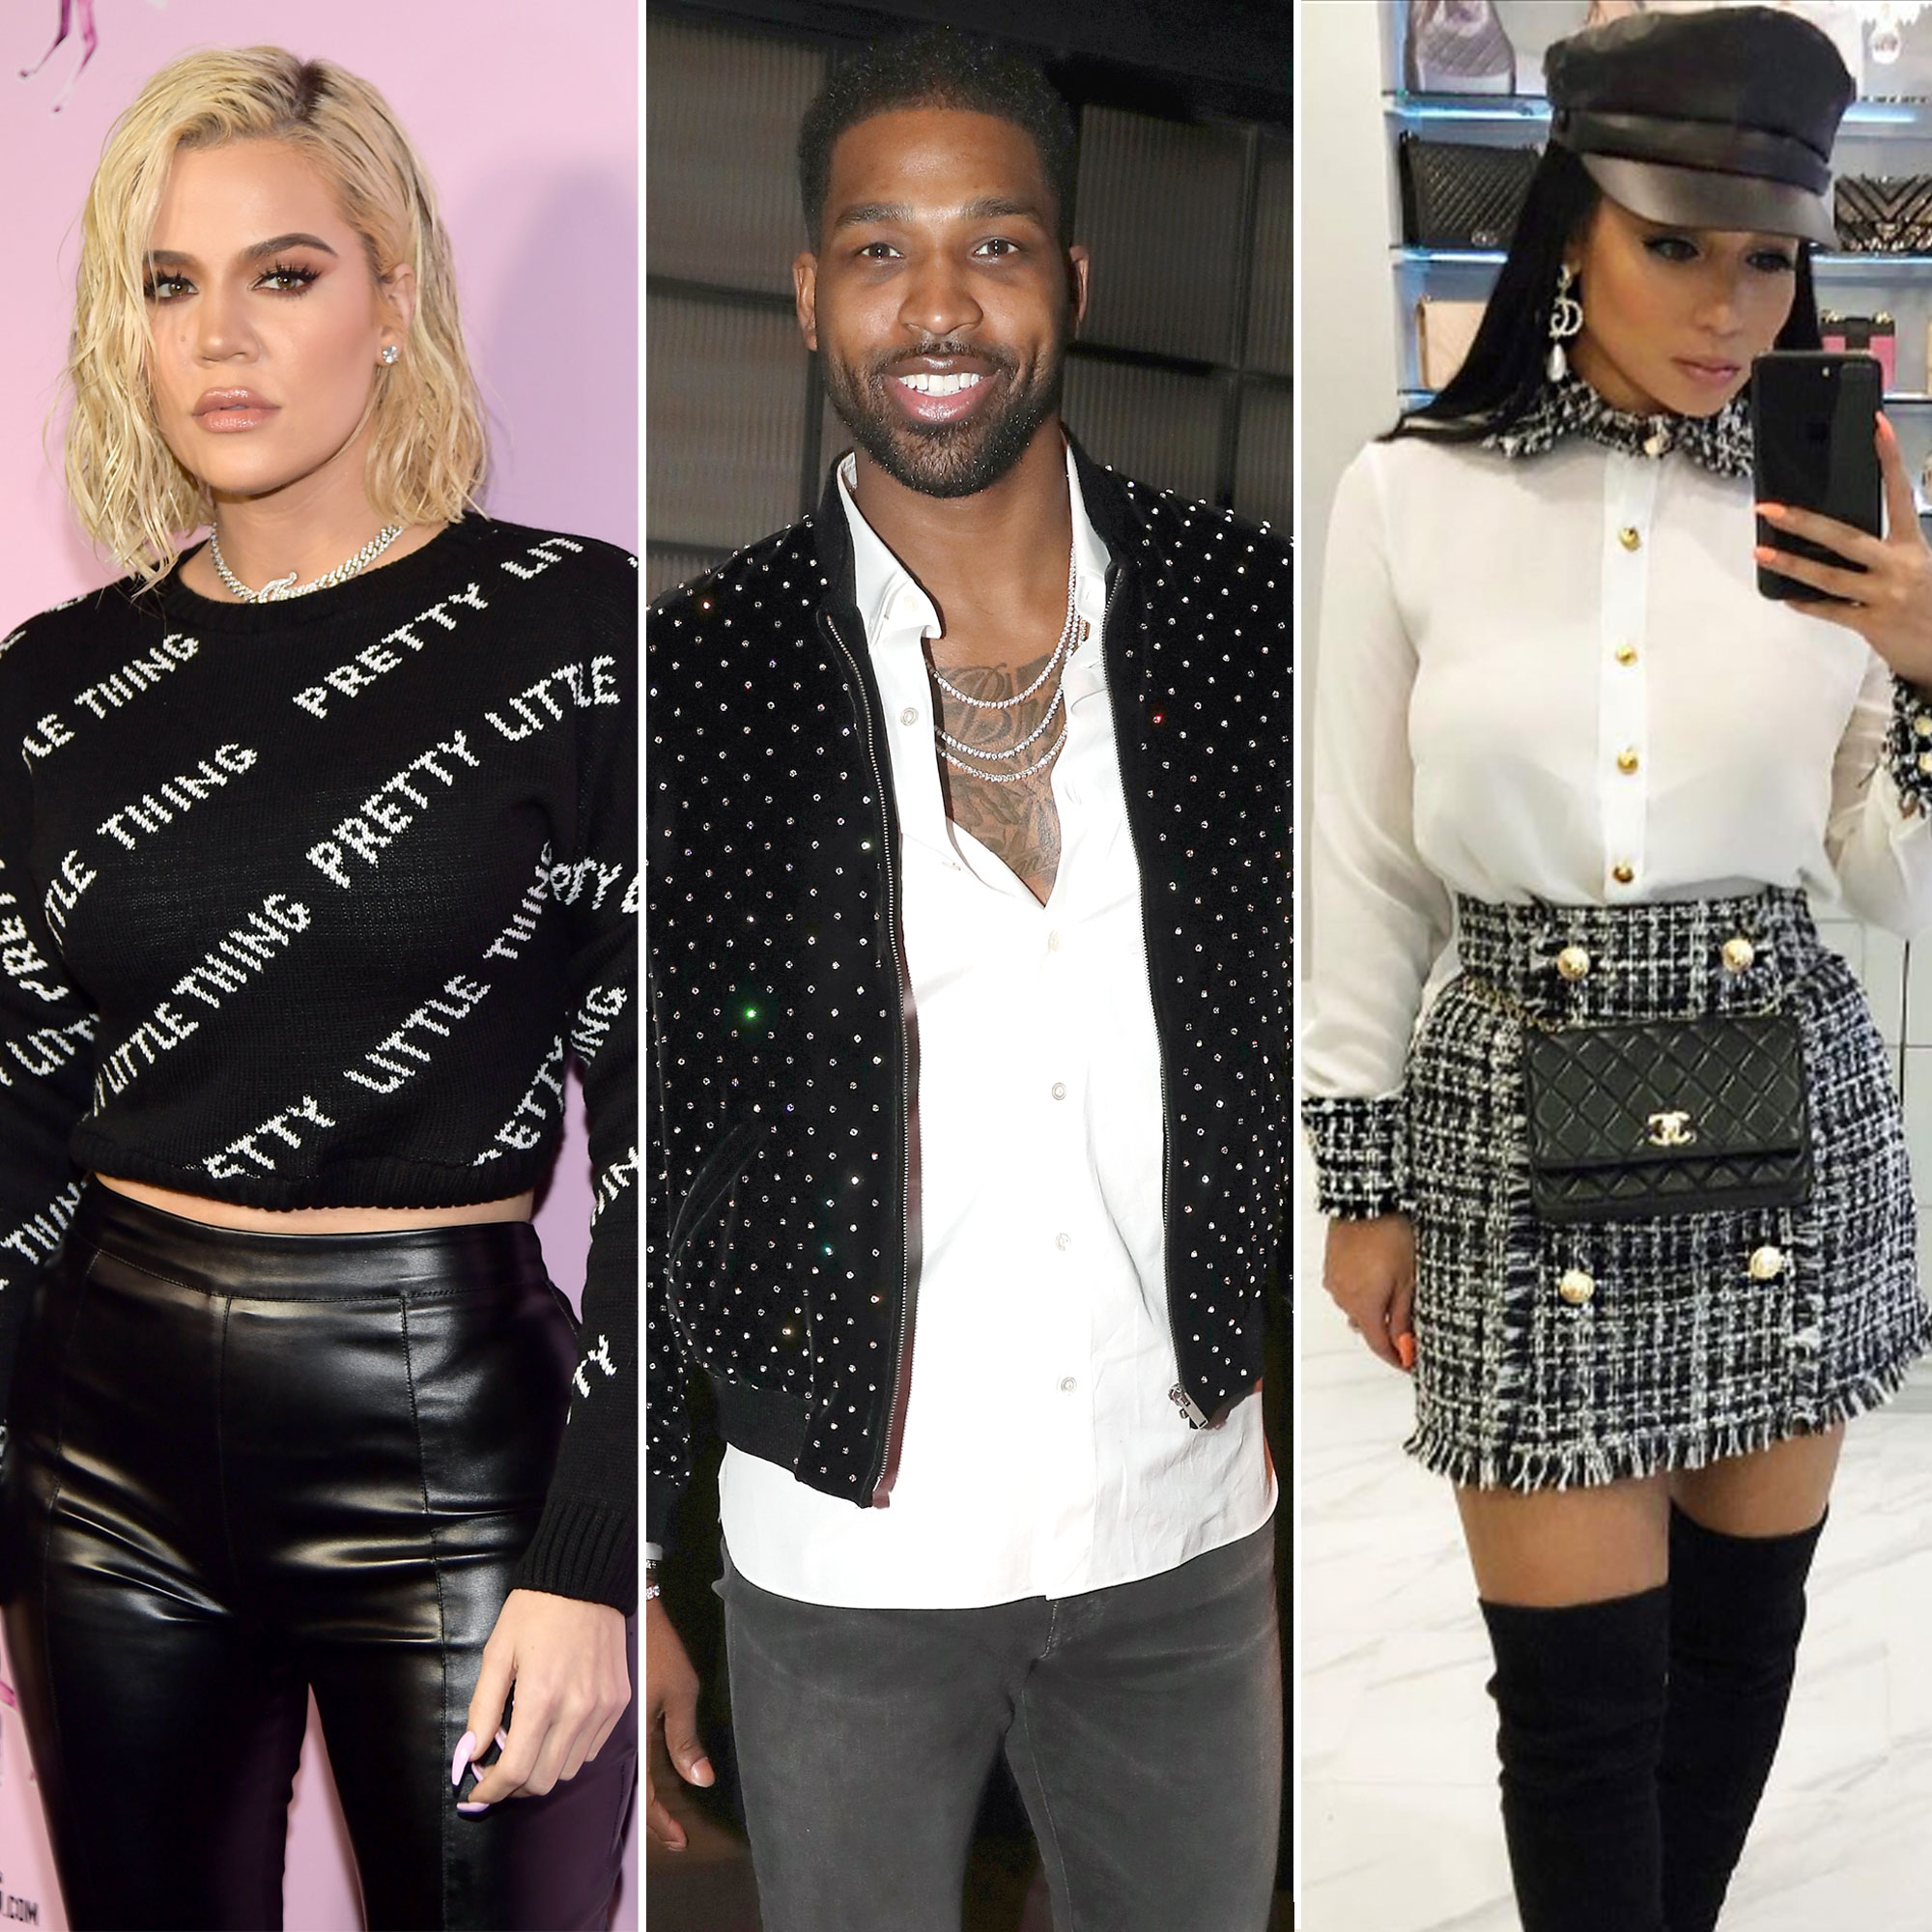 Khloe Kardashian Denies She Started Dating Tristan Thompson While He Was Still With Jordan Craig